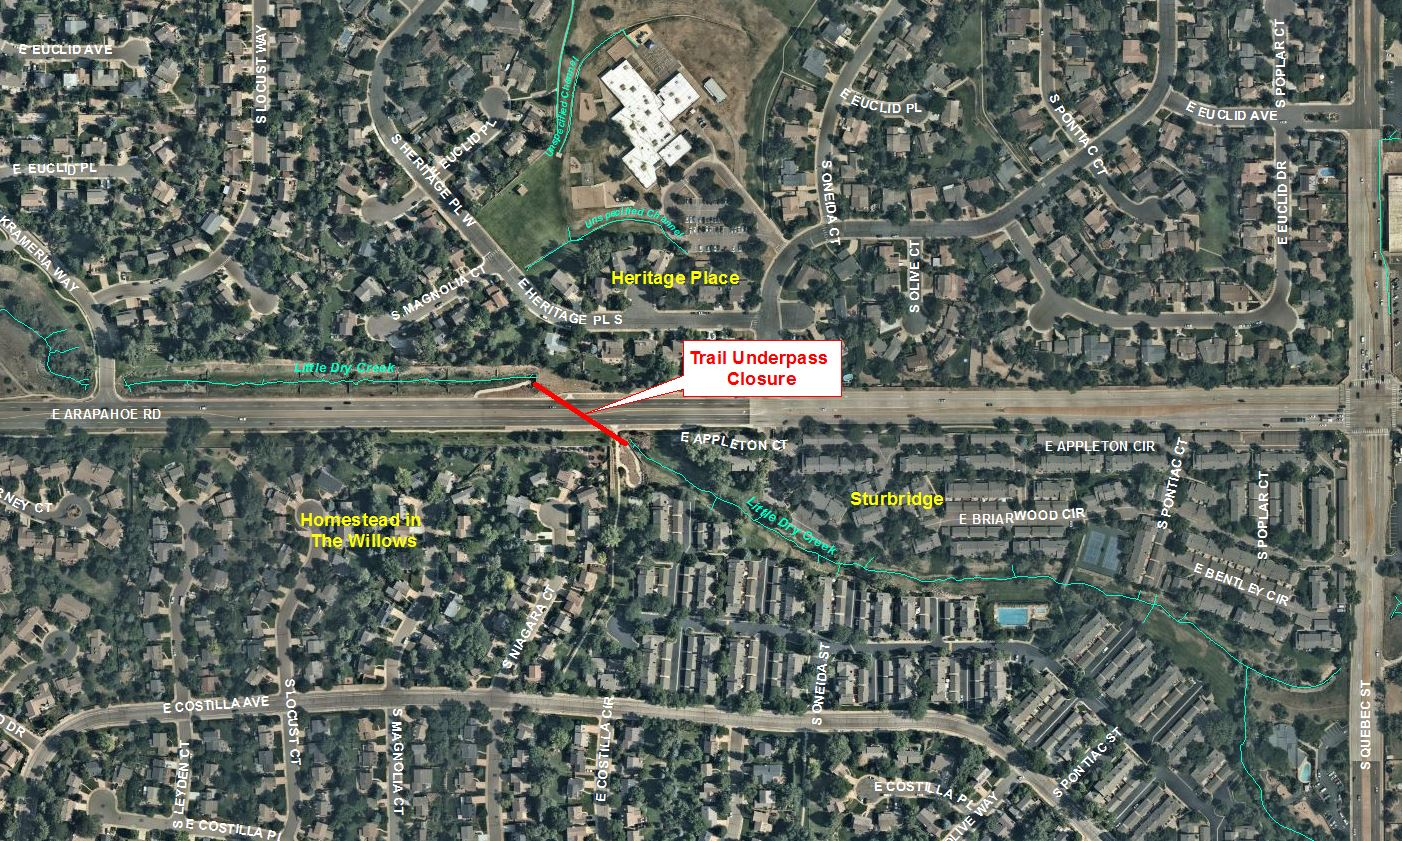 Trail Underpass Closure at Arapahoe Rd and Little Dry Creek